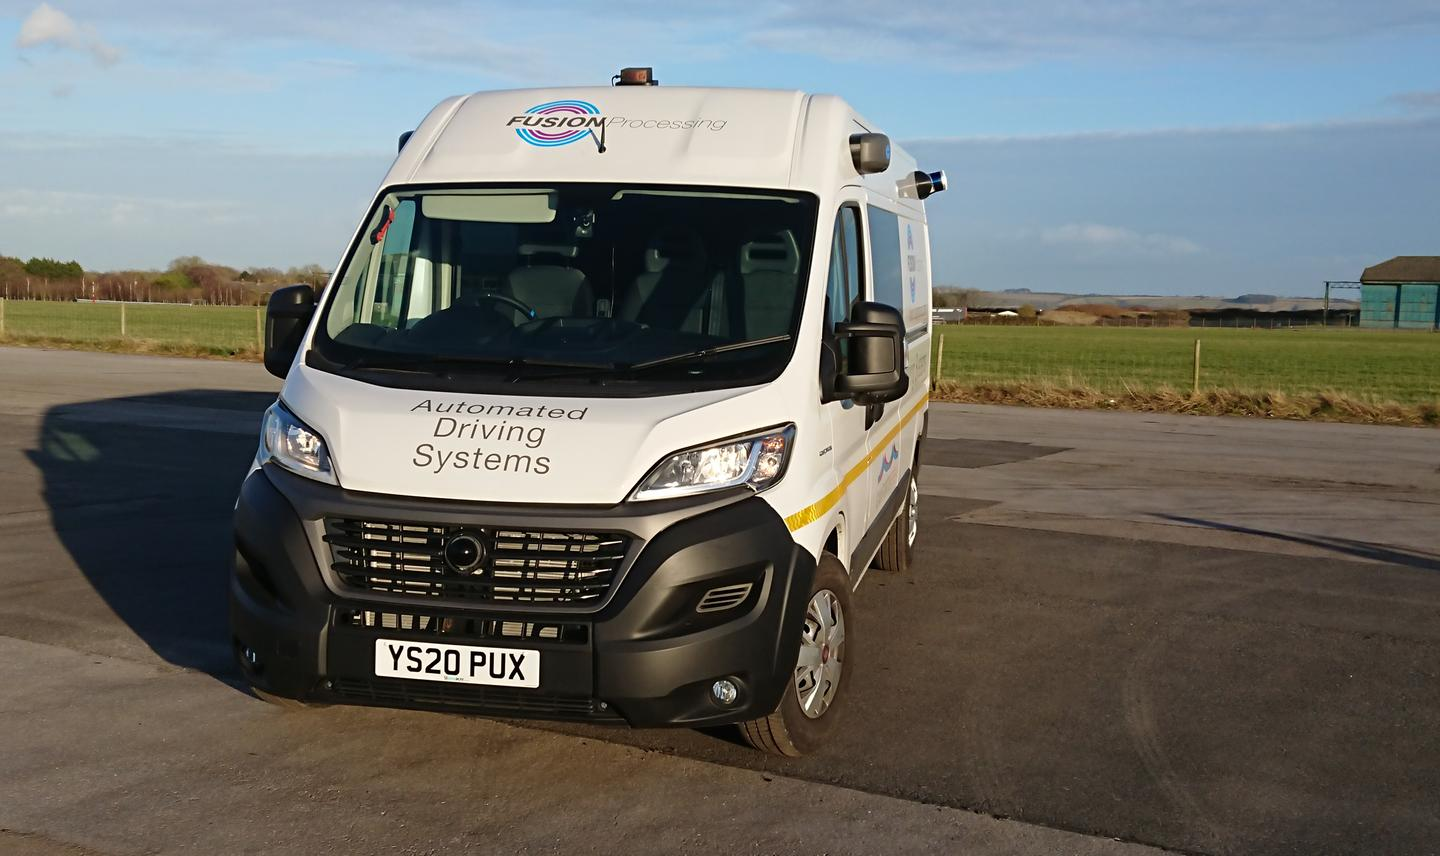 Fusion Processing equips a long-wheelbase Ducato crew van with its Level 4/5 autonomous driving hardware